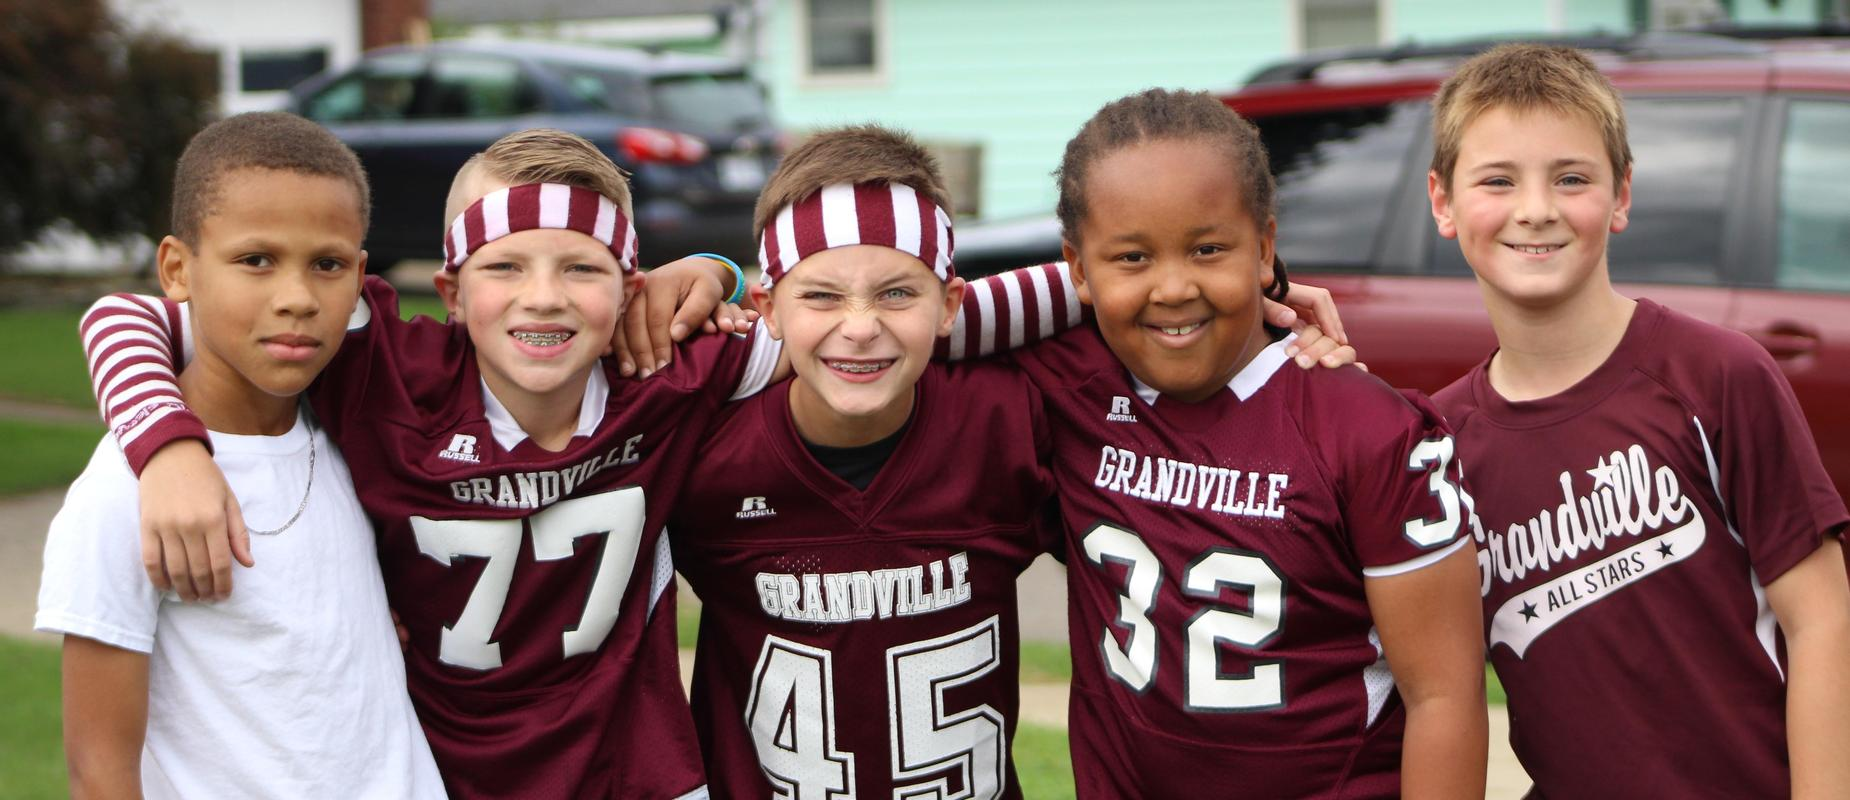 5 elementary boys in maroon and white shirts stand with arms around each other outside